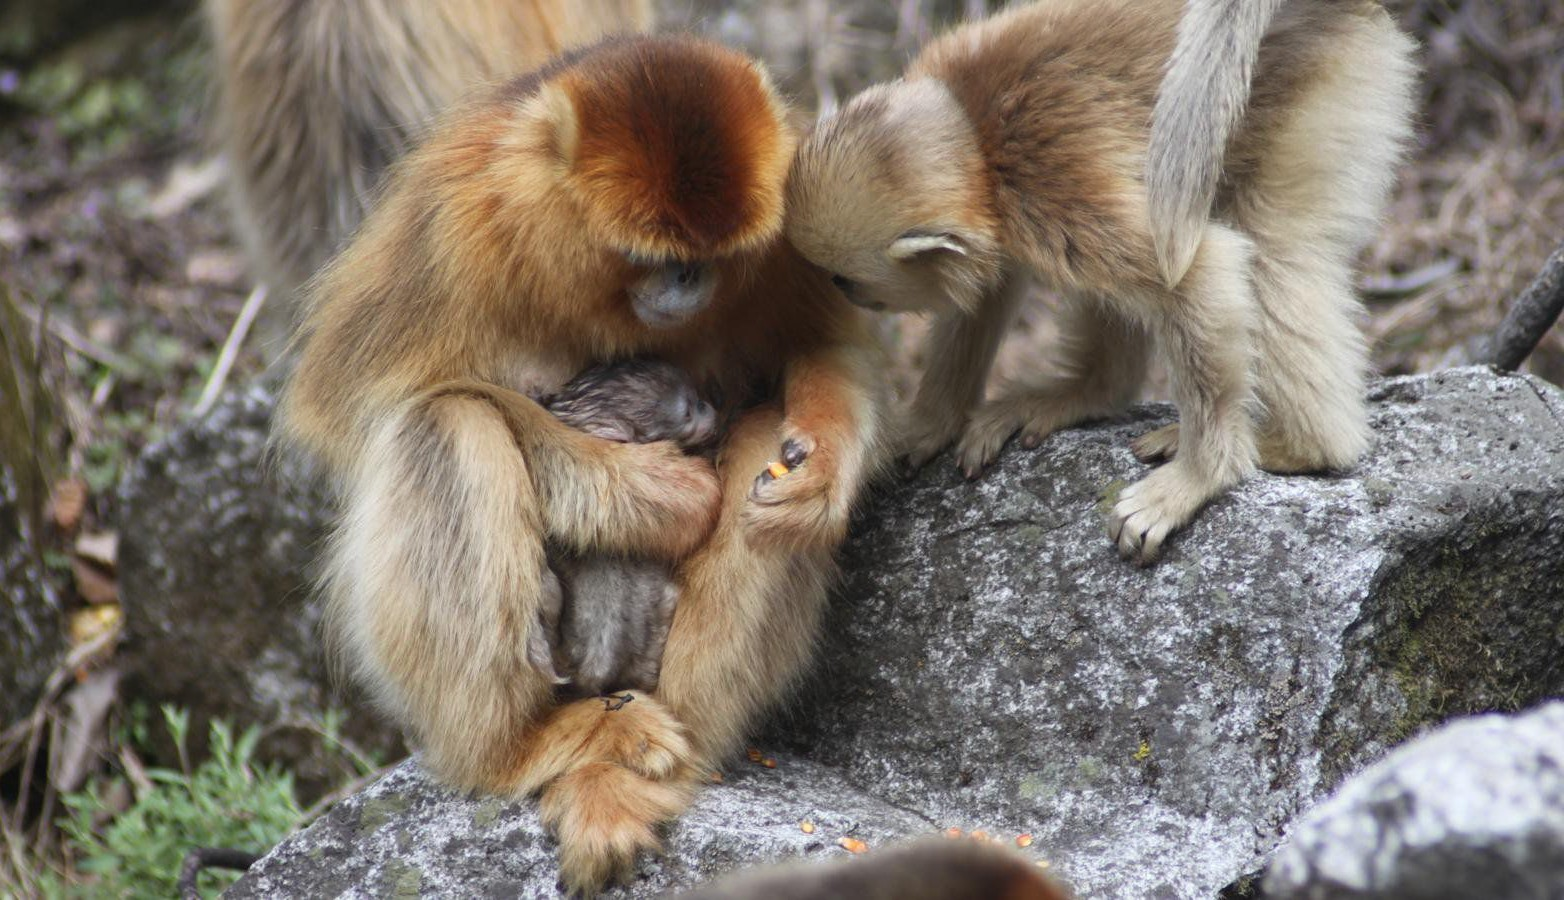 """***LInk back to this article: http://link.springer.com/article/10.1007/s11434-016-1008-z*** Monkeys rarely give birth during the day. The darkness of night gives them better protection from any predators that are lurking. As a result, monkey births in the wild have scarcely been observed. It was previously believed that they usually give birth alone. Now for the first time in several decades of observation, researchers have seen a wild golden snub-nosed monkey (Rhinopithecus roxellana) give birth during the day. That was not all. The monkey had a """"midwife"""", another female who was there to assist her during labour."""